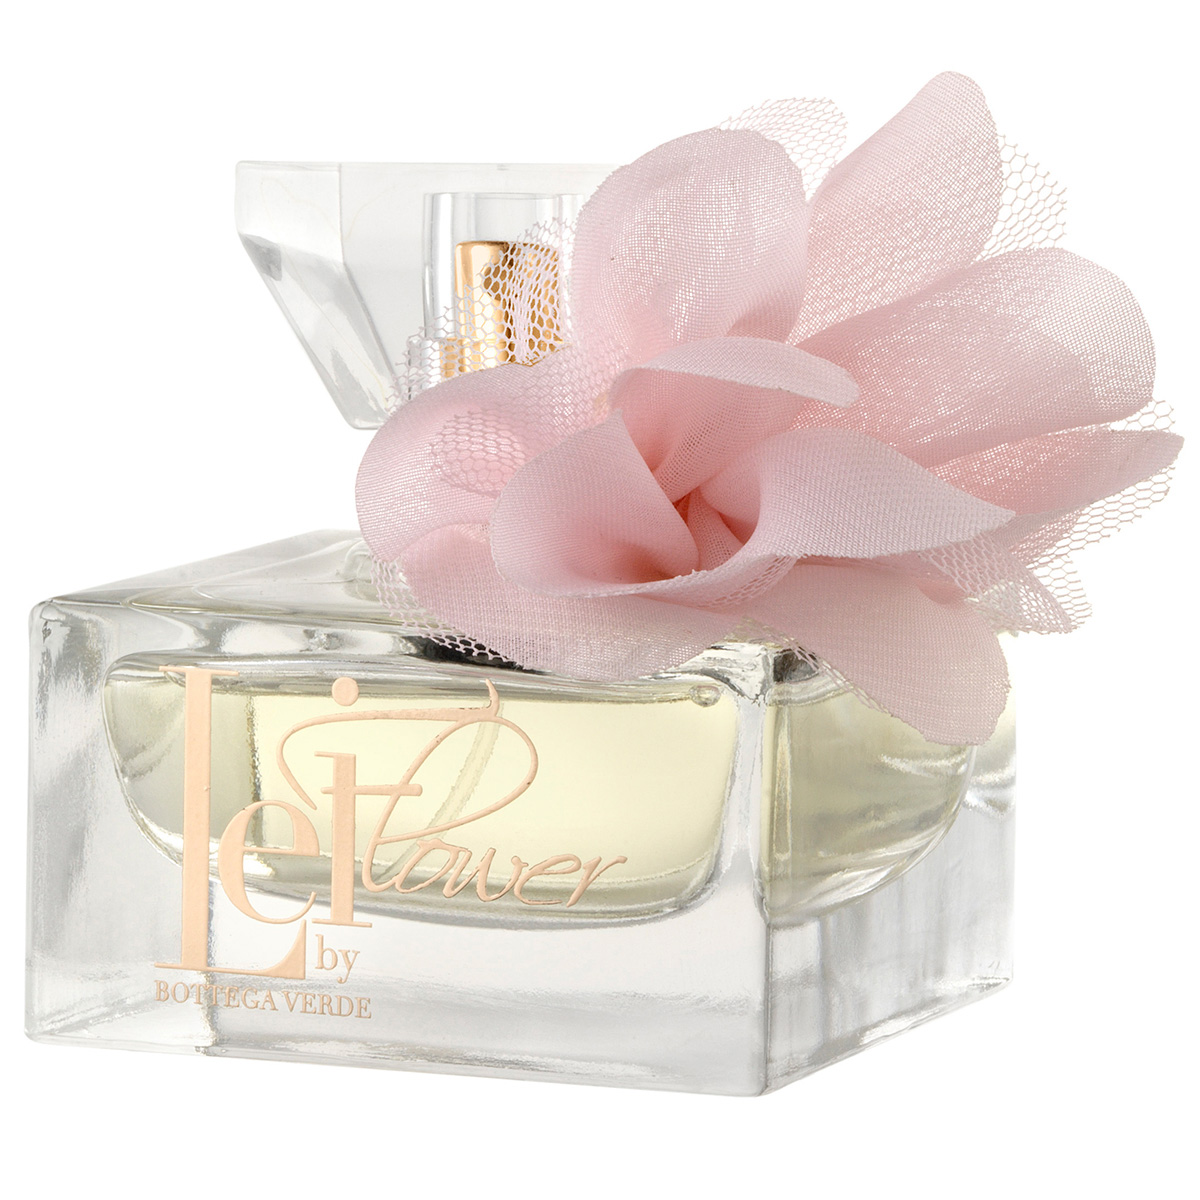 Apa de parfum Flower imagine produs